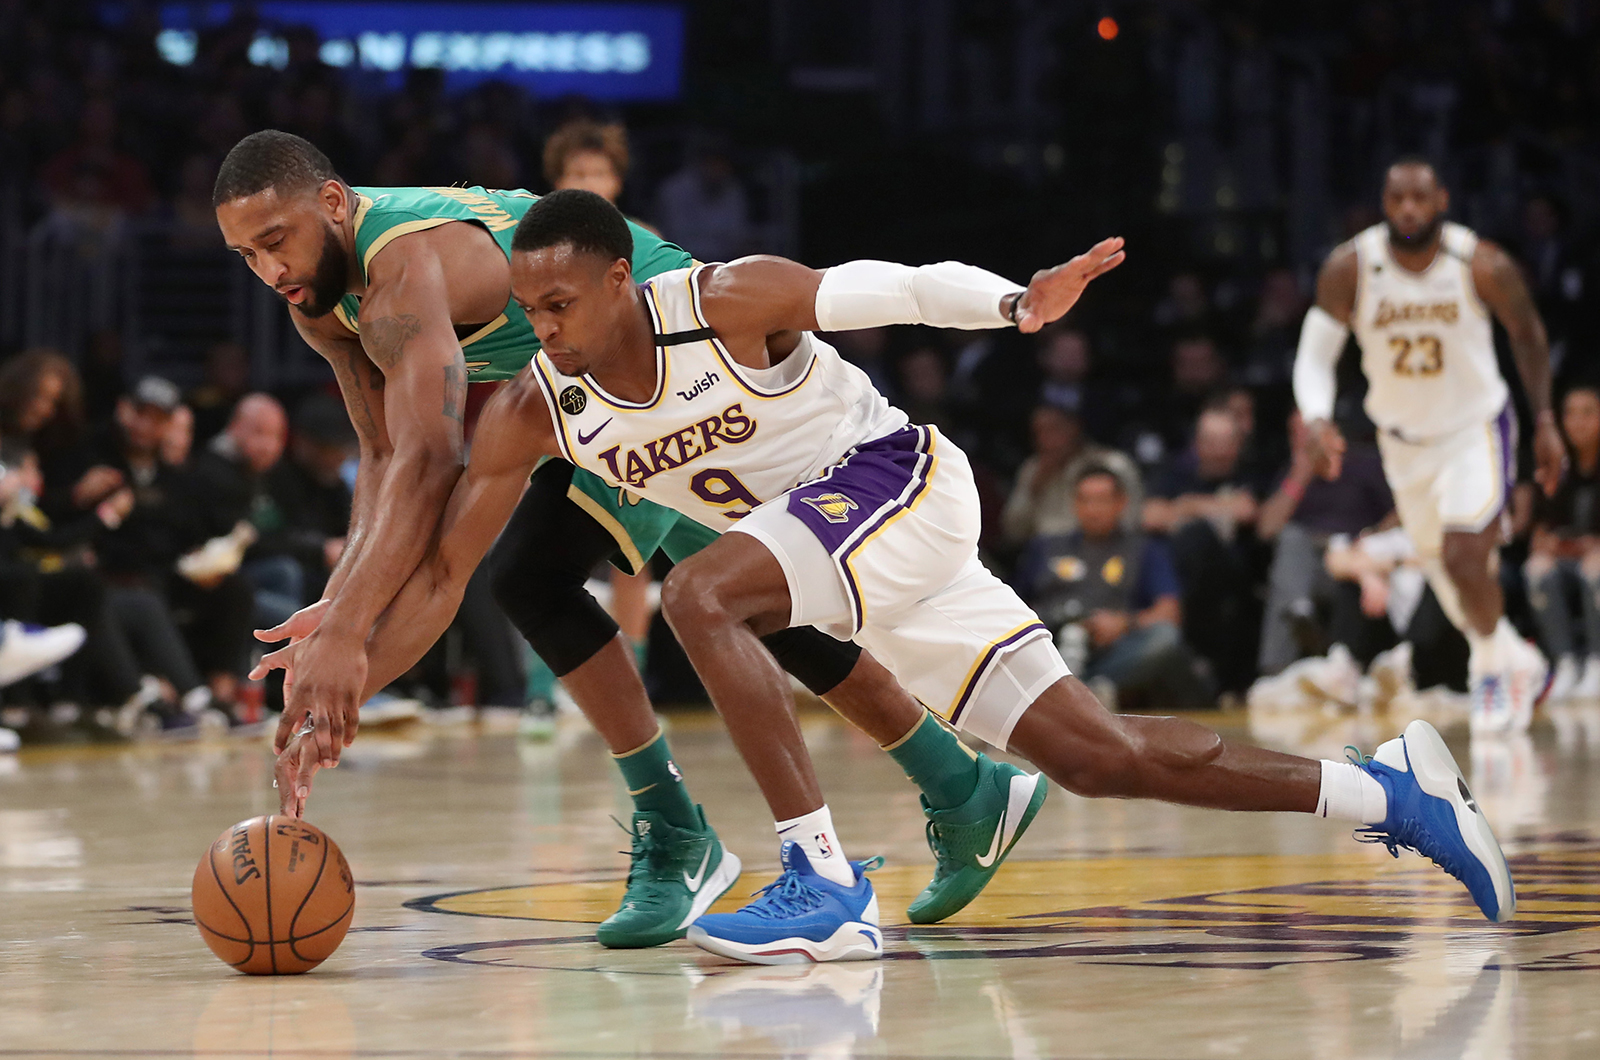 Rajon Rondo #9 of the Los Angeles Lakers fights for the ball from Brad Wanamaker #9 of the Boston Celtics during the second quarter at Staples Center on February 23, in Los Angeles, California.